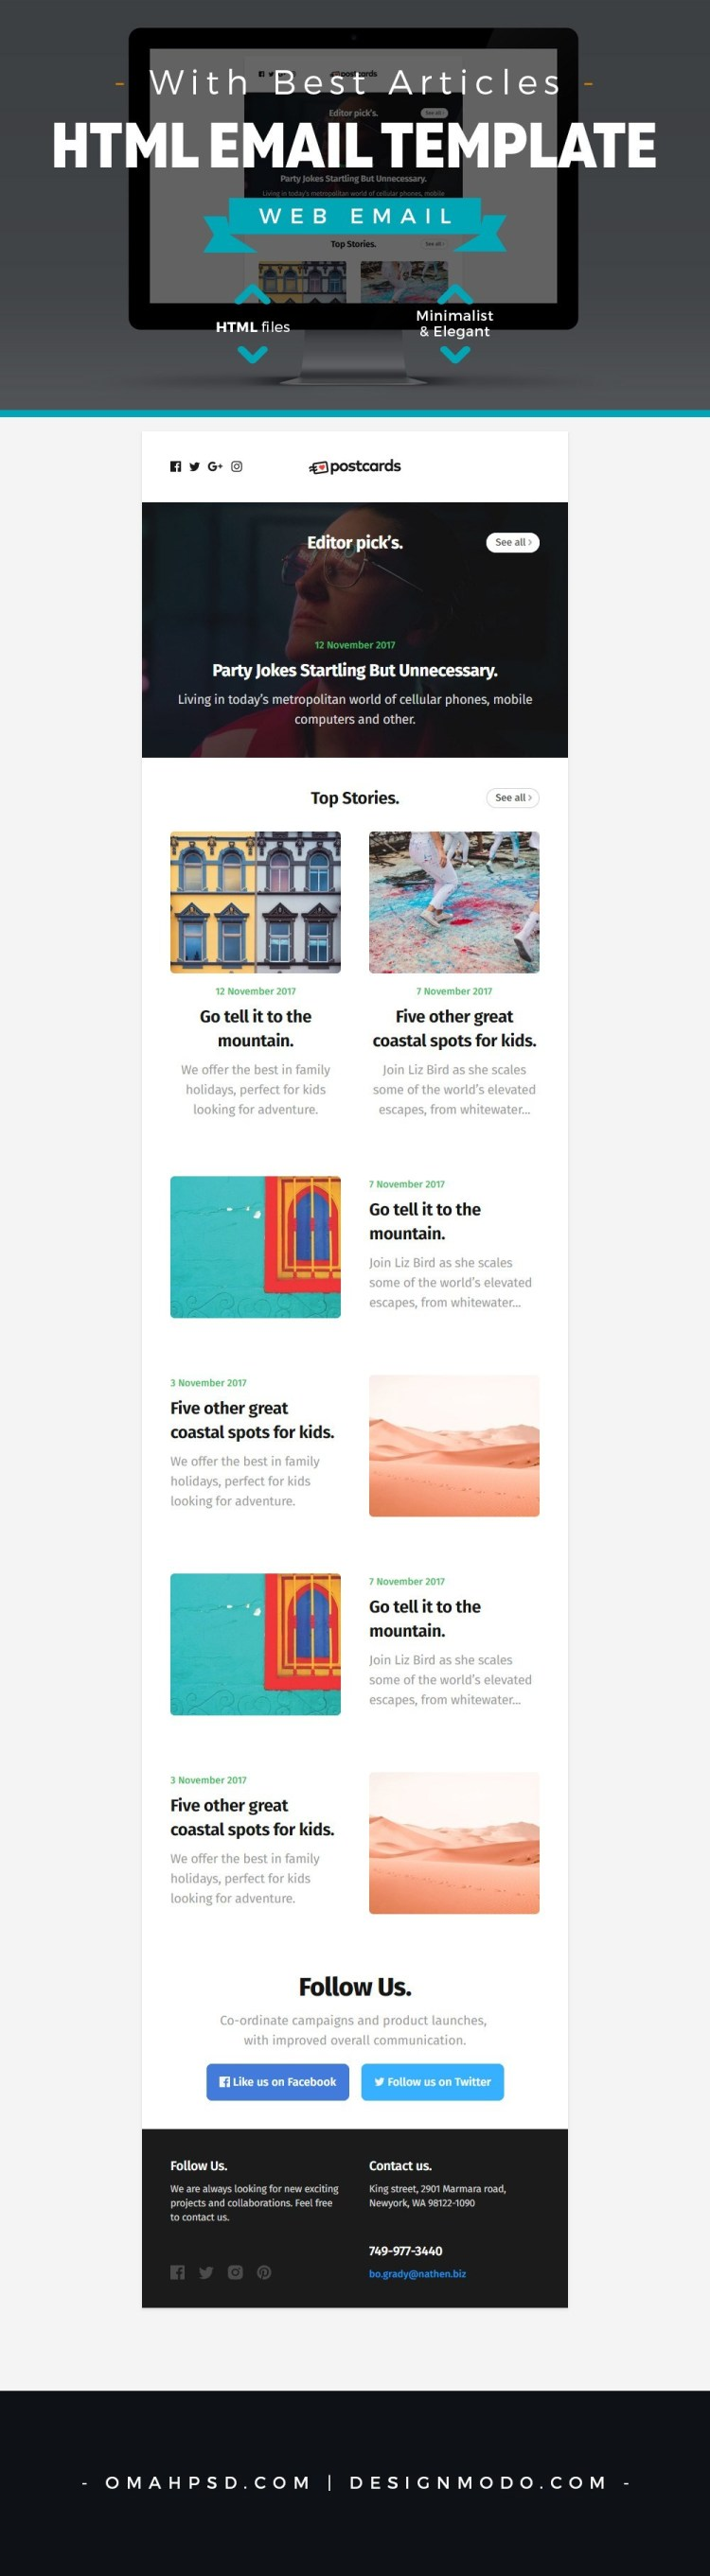 free-email-template-with-best-articles